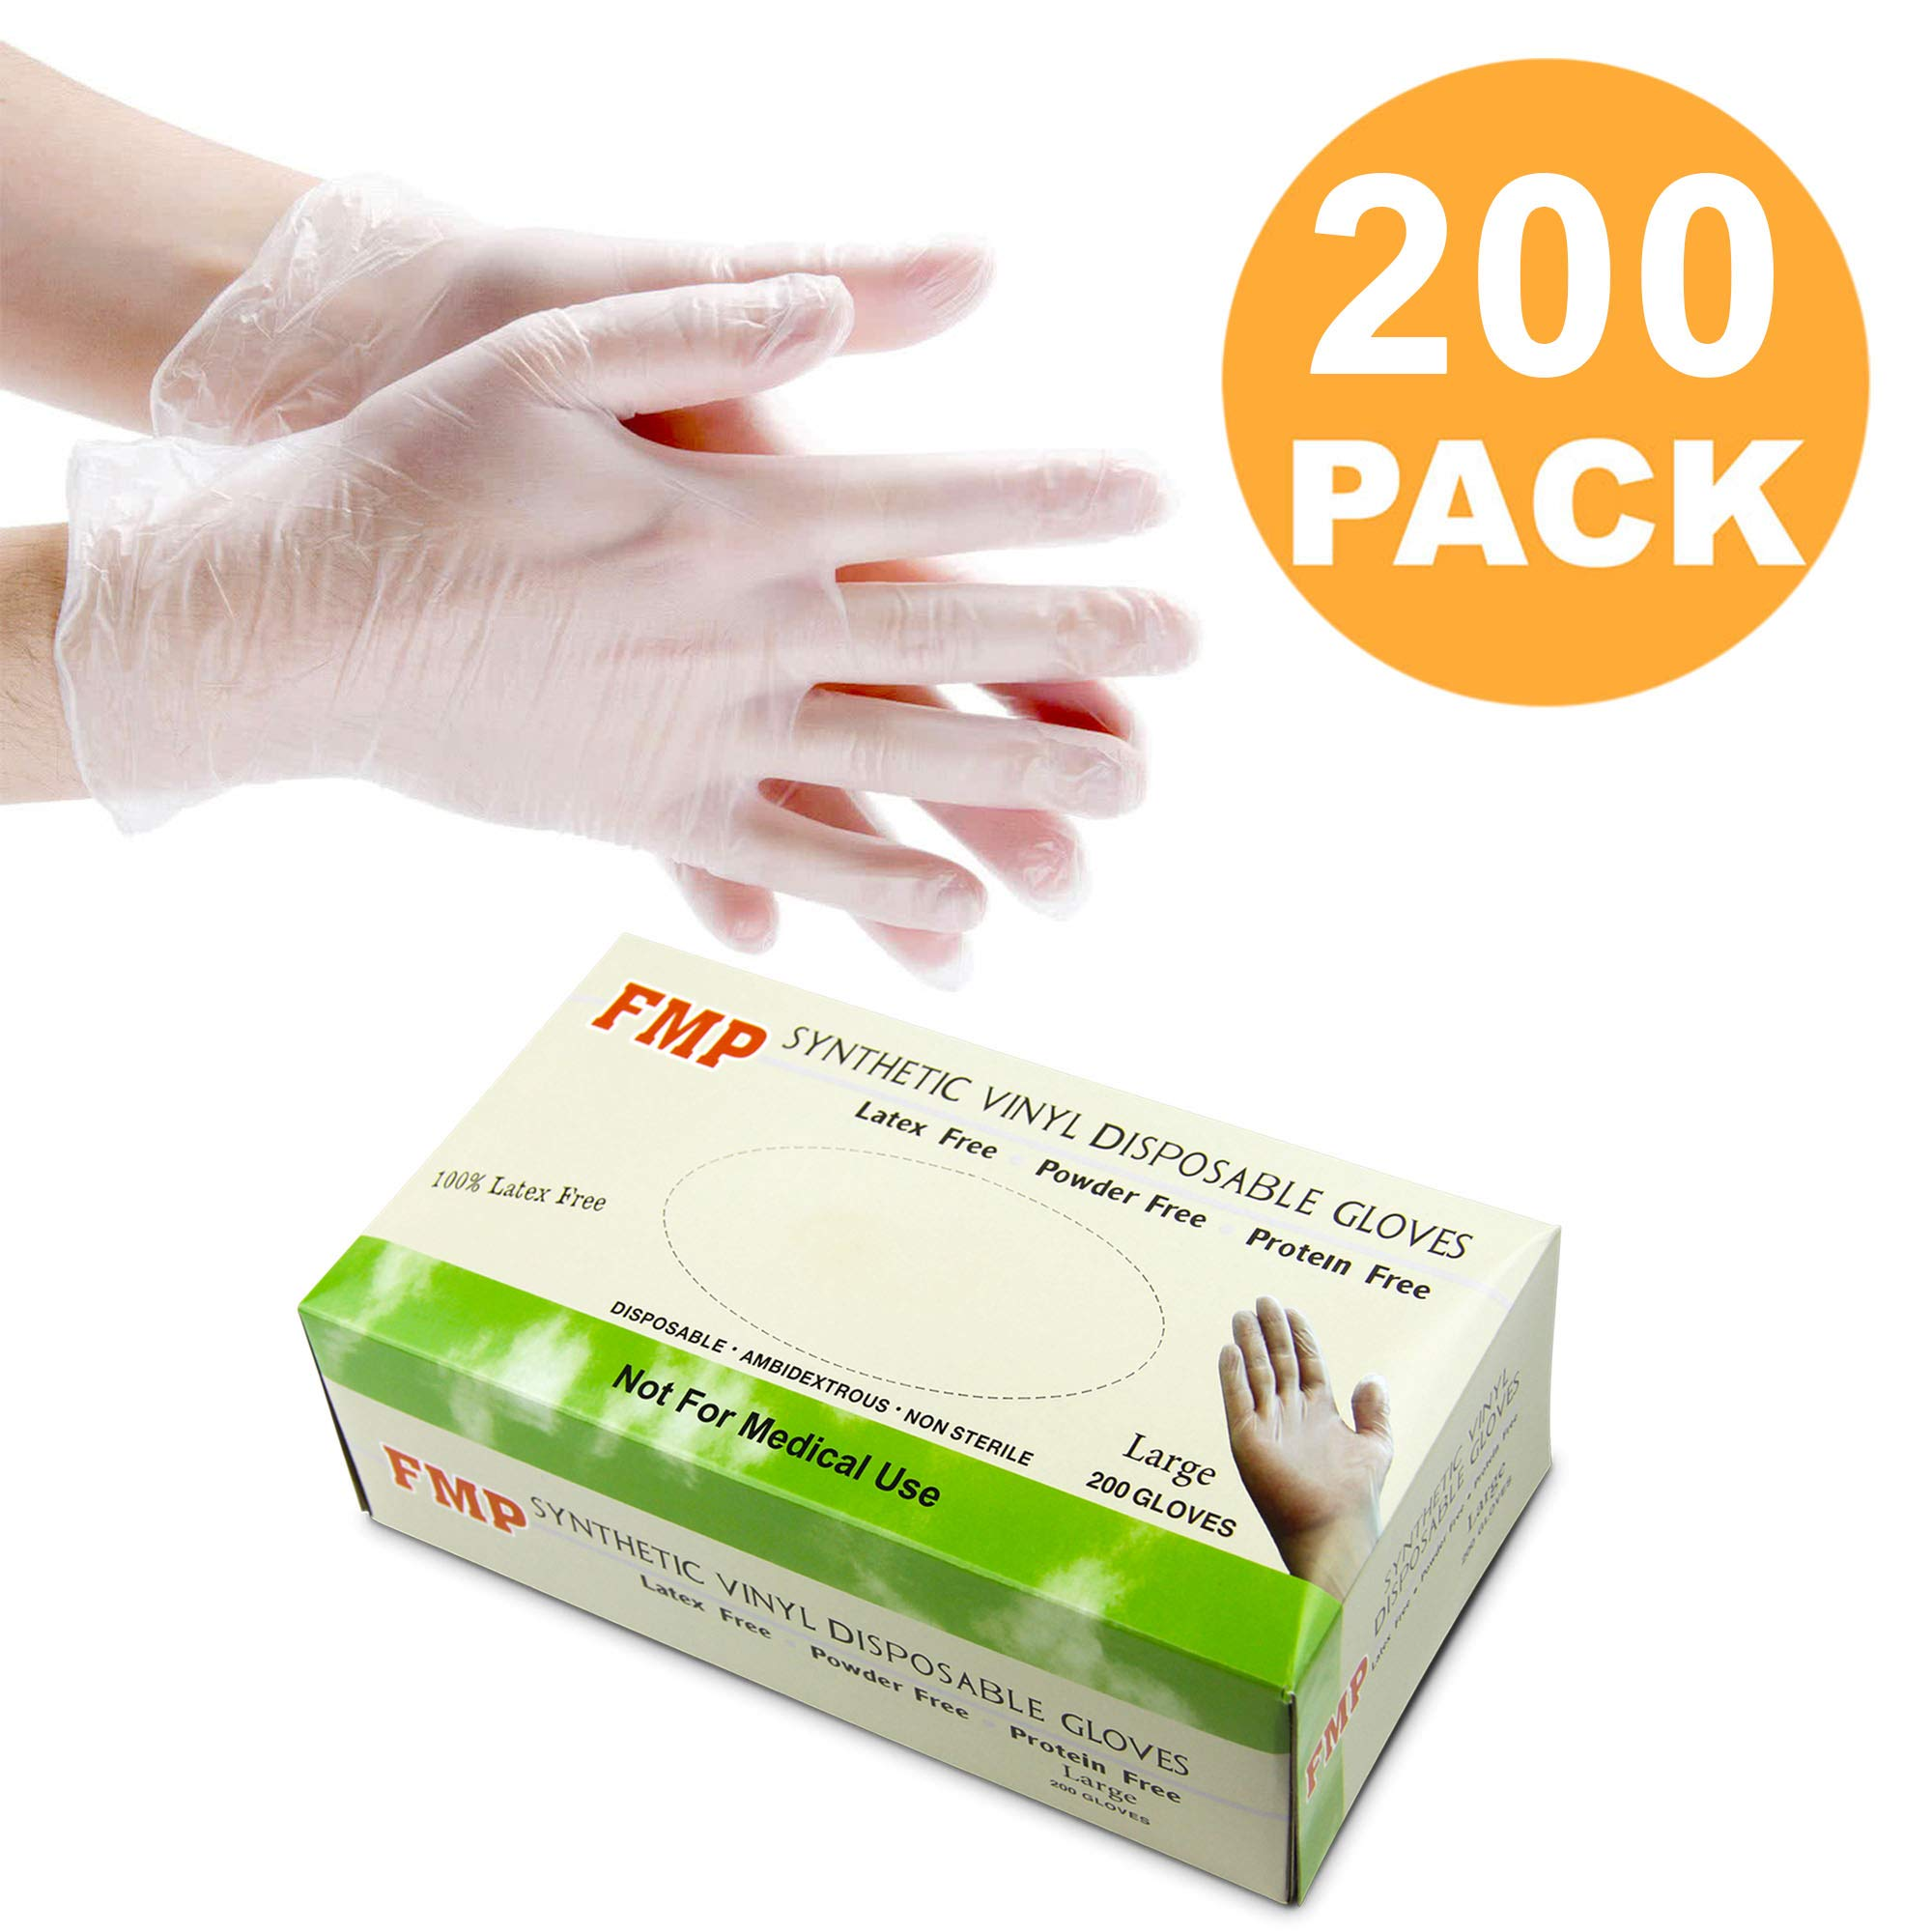 Disposable Vinyl Gloves, Non-Sterile, Powder Free, Smooth Touch, Food Service Grade, Large Size [200 Pack] by Fit Meal Prep